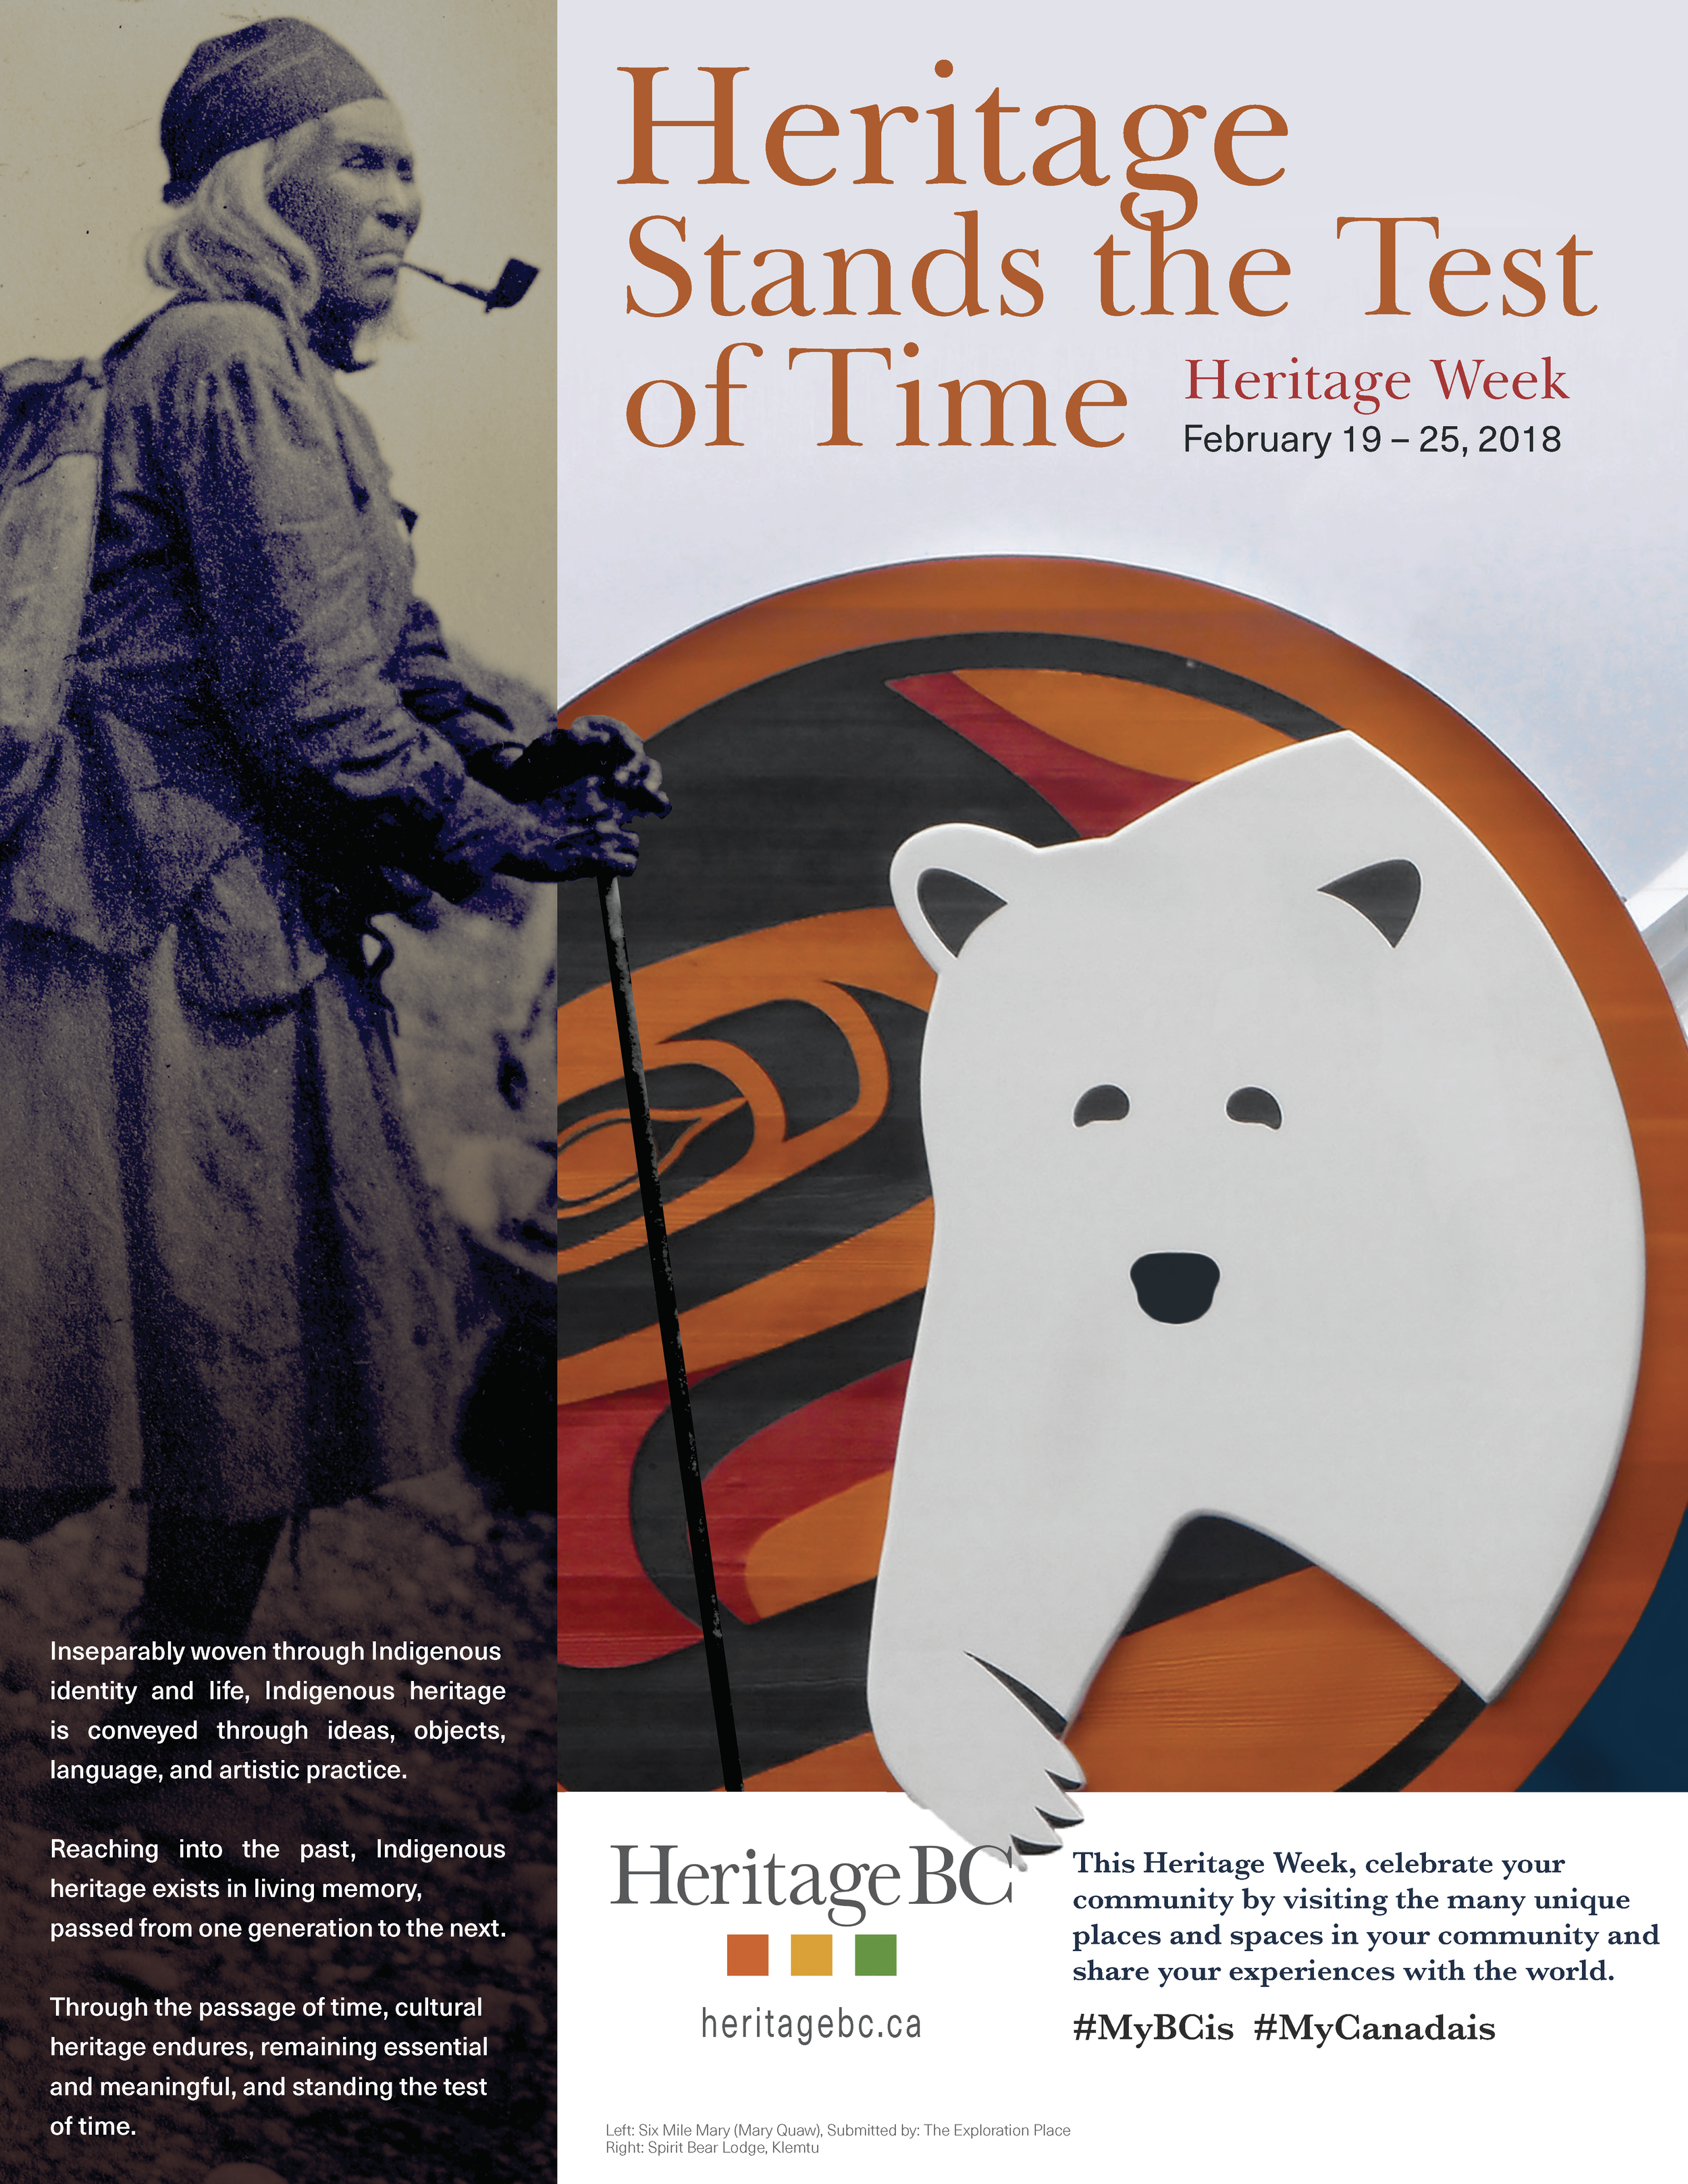 Heritage-Week-poster-2018_SELECTED-17x22.jpg